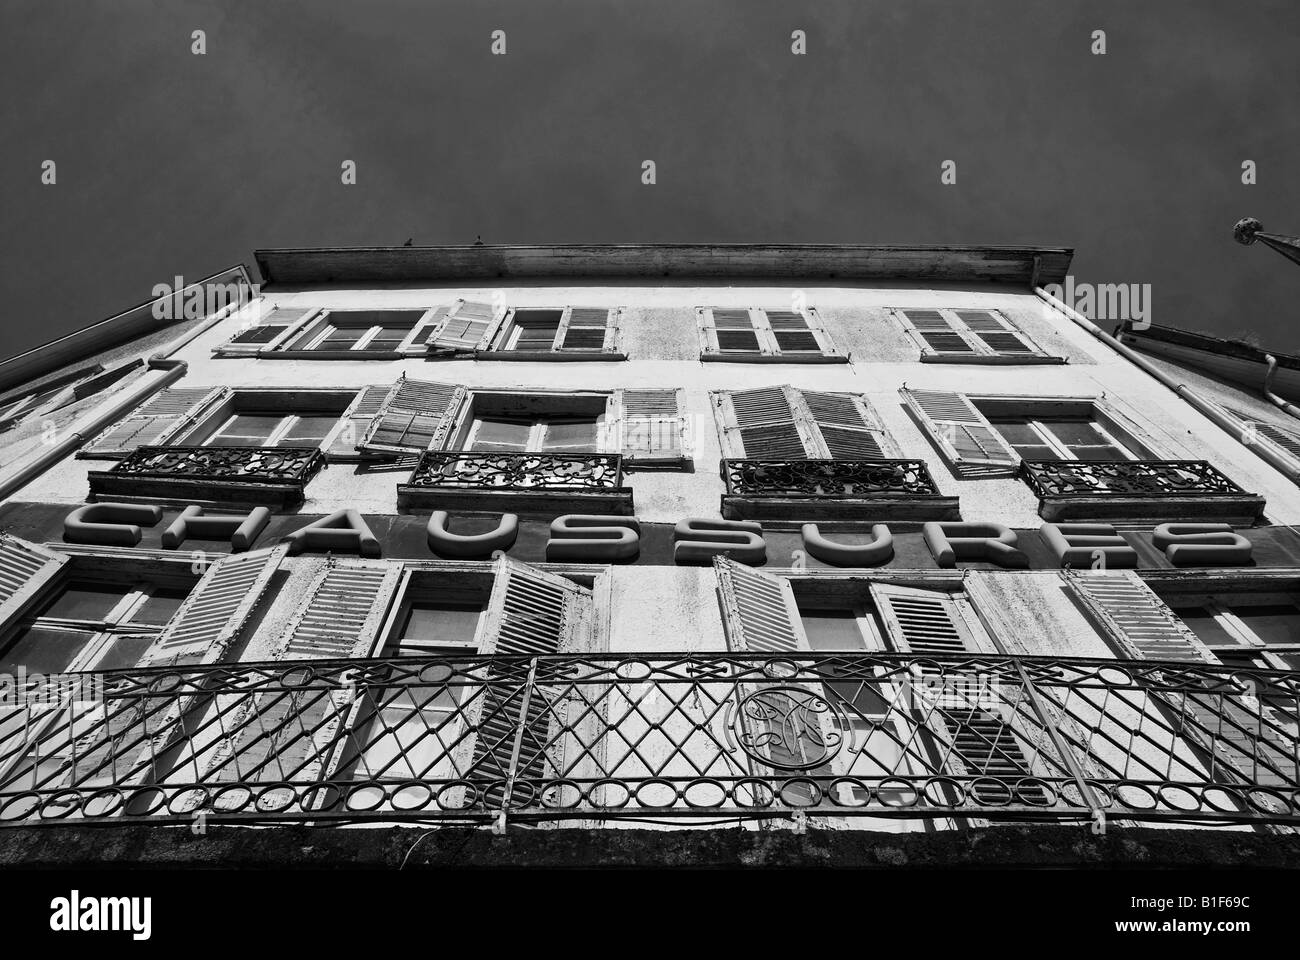 Stock photo of an old shuttered windowed shoe shop The photo was taken in the city of Limoges in France - Stock Image